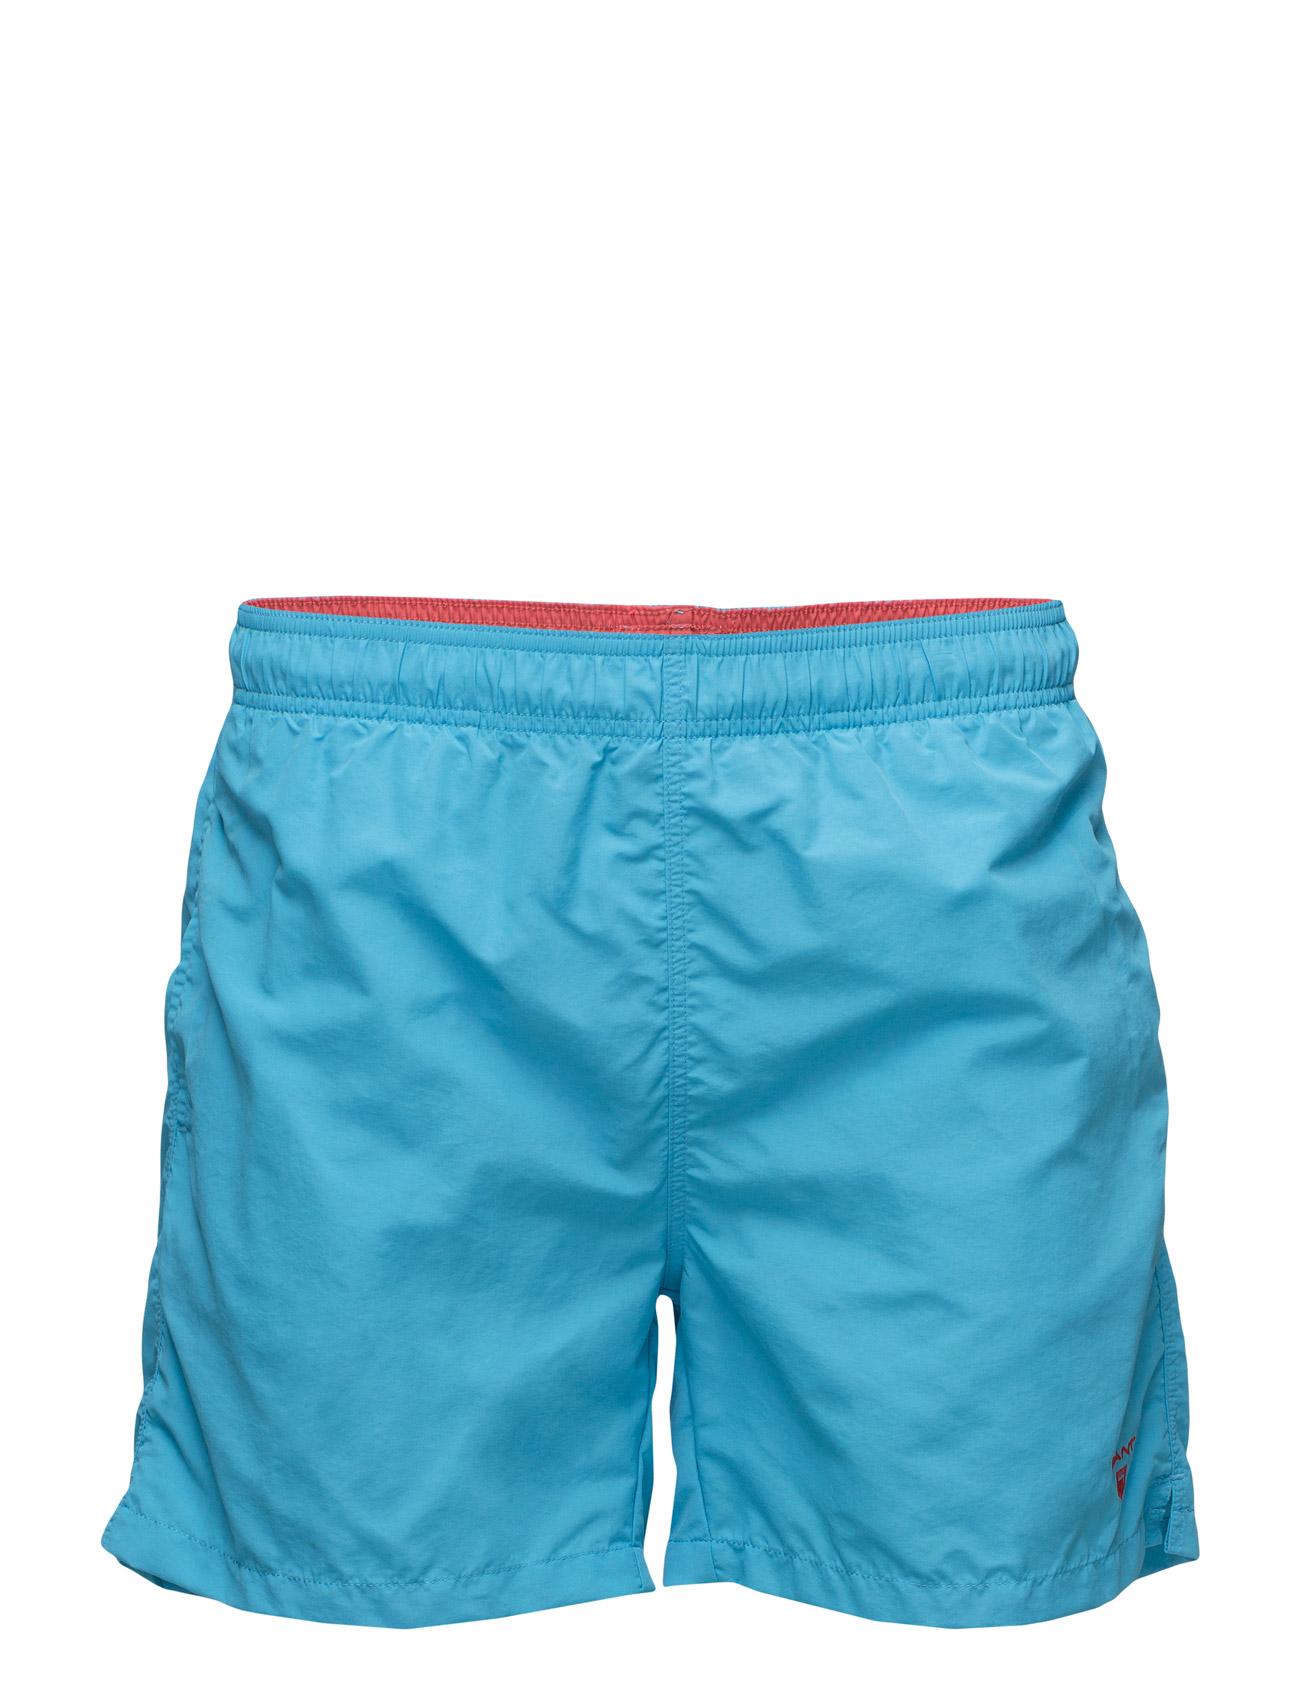 Basic Swim Shorts C.F GANT Shorts